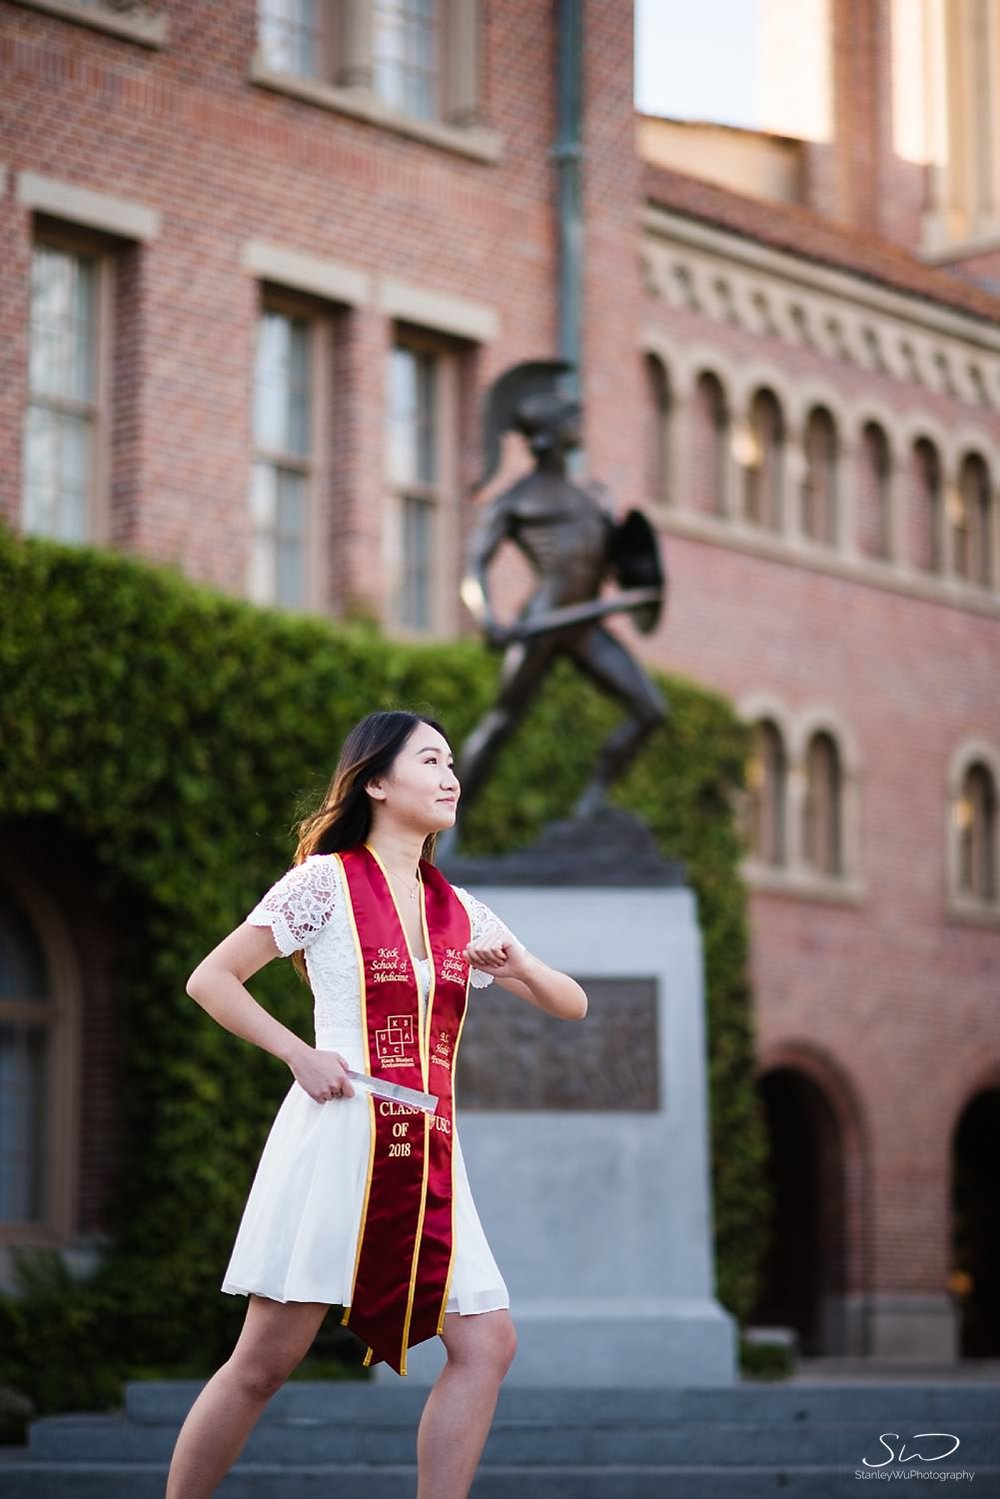 Posing with Tommy Trojan graduation photo at USC | Los Angeles Orange County Senior Portrait & Wedding Photographer